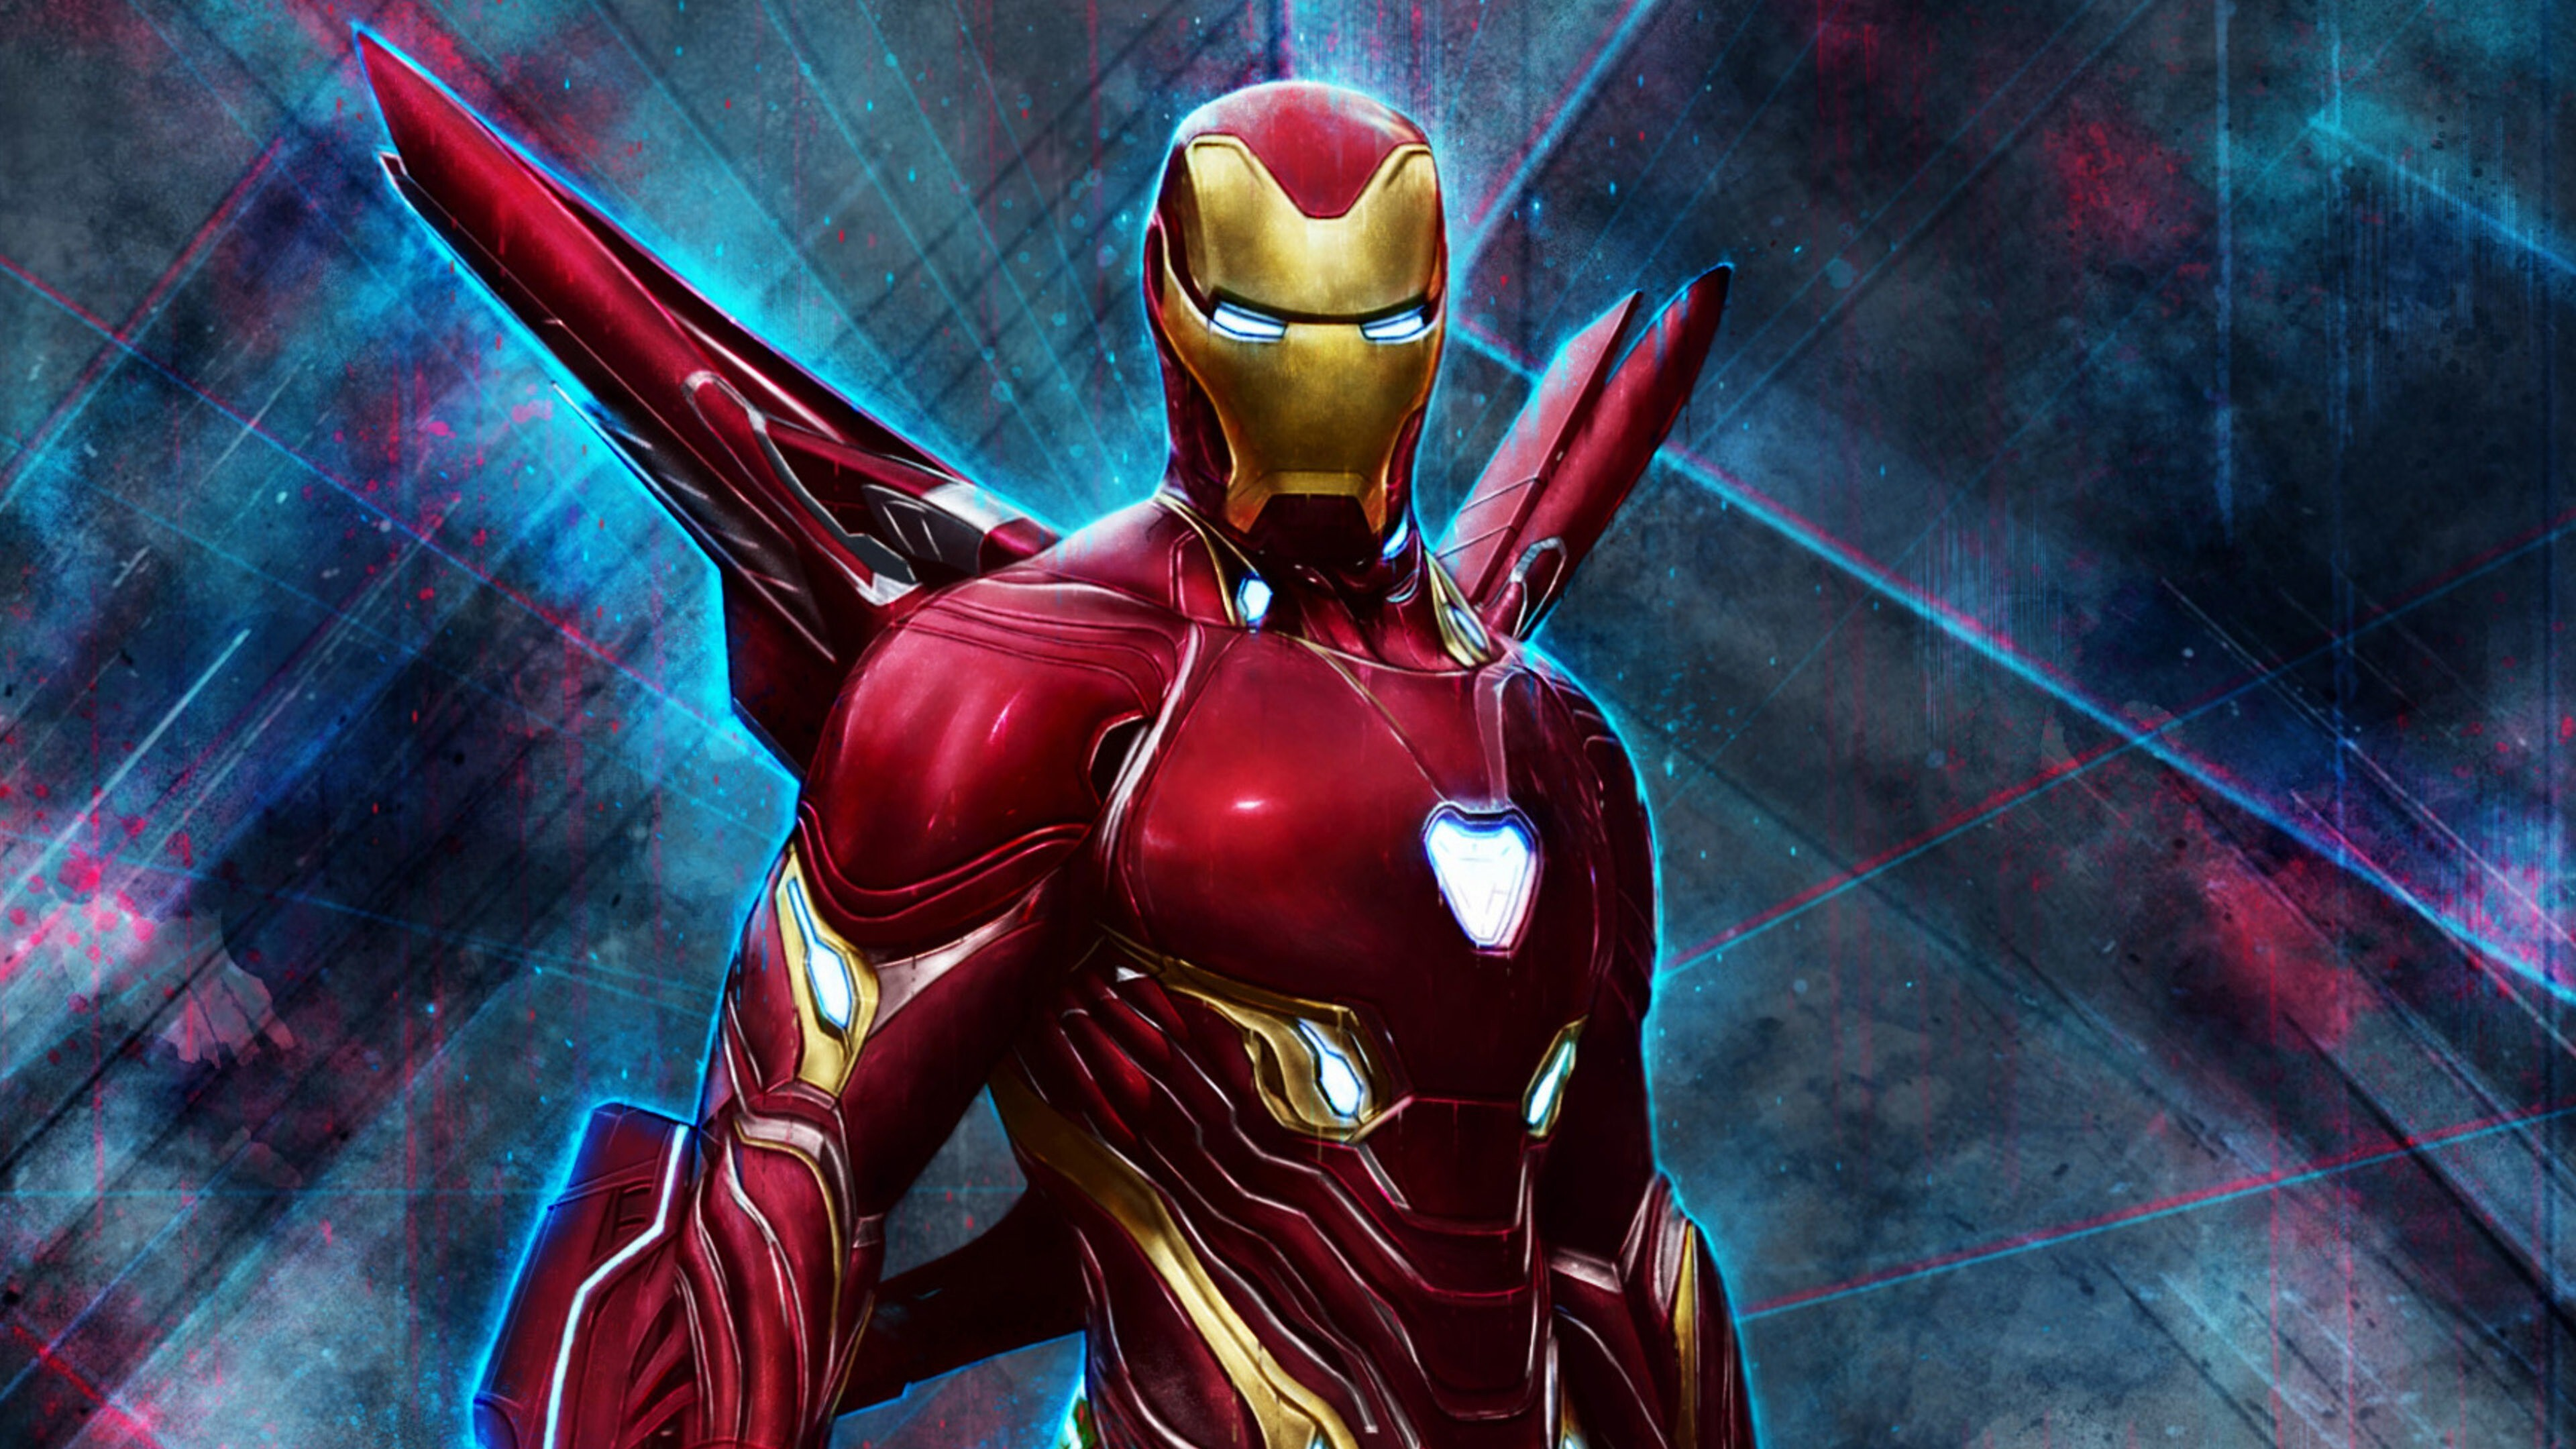 4k Pic Of Superhero Iron Man Hd Wallpapers